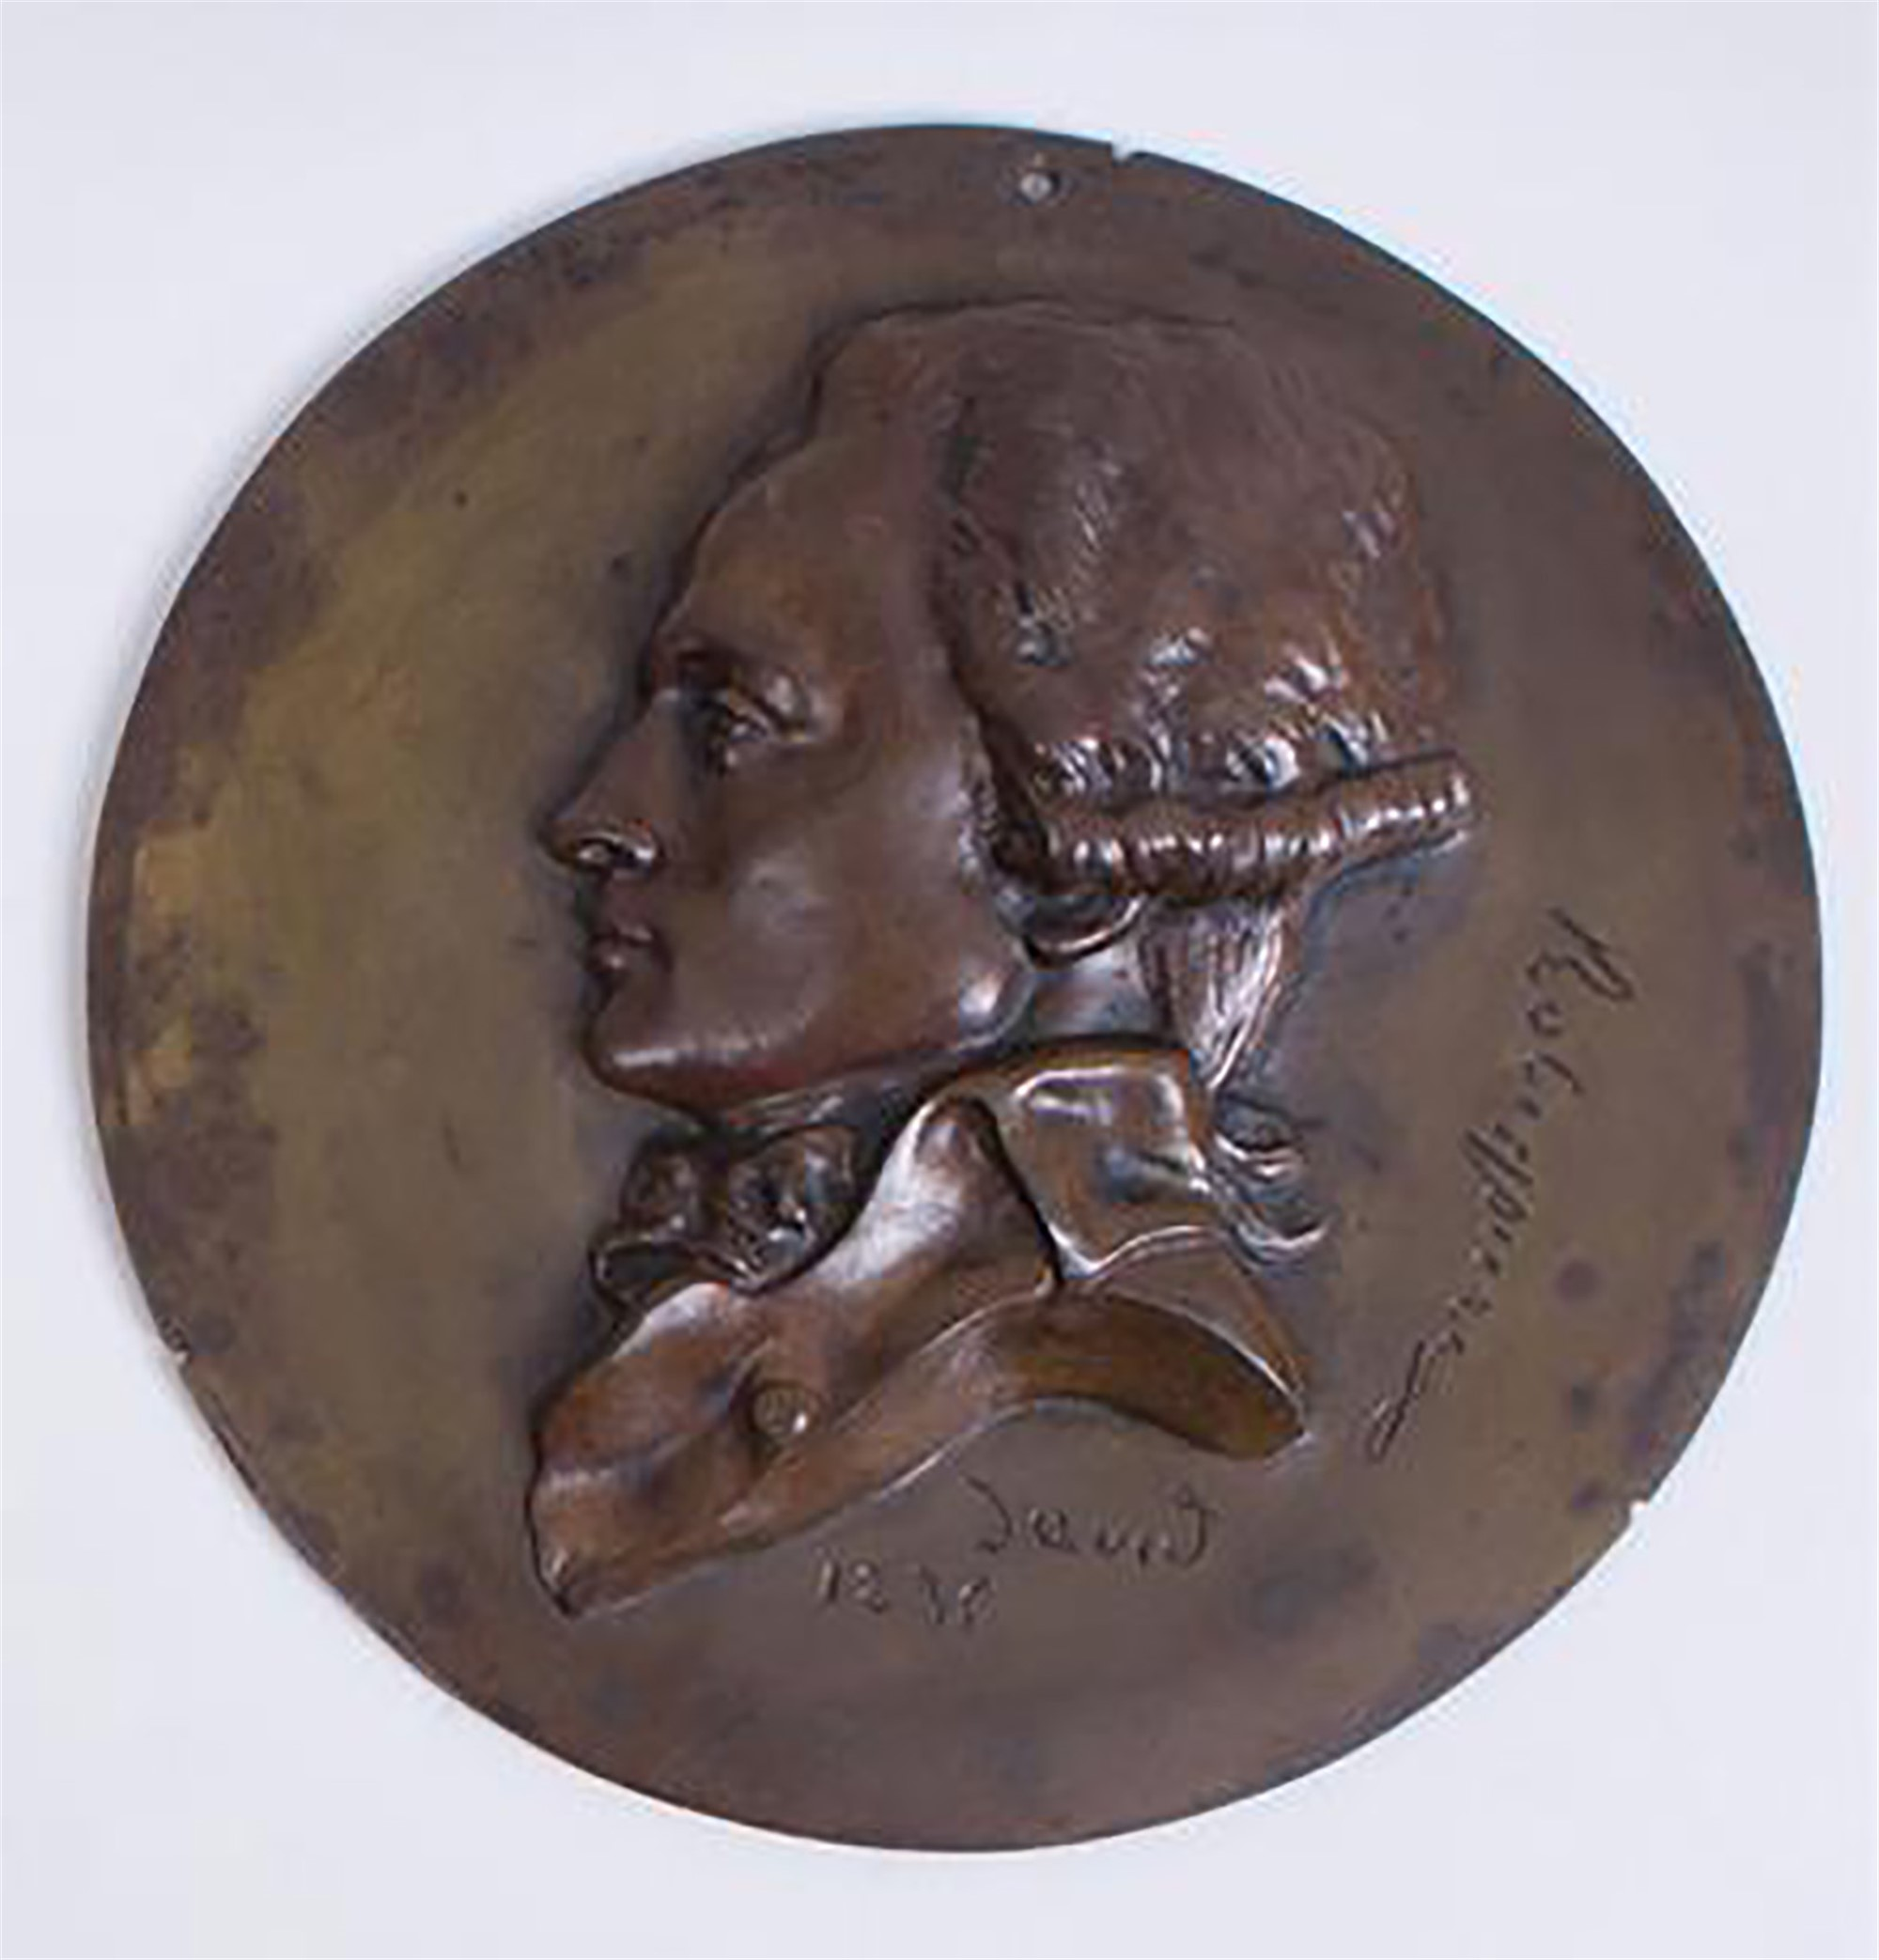 BRONZE RONDEL OF ROBESPIERRE by David D'Angers